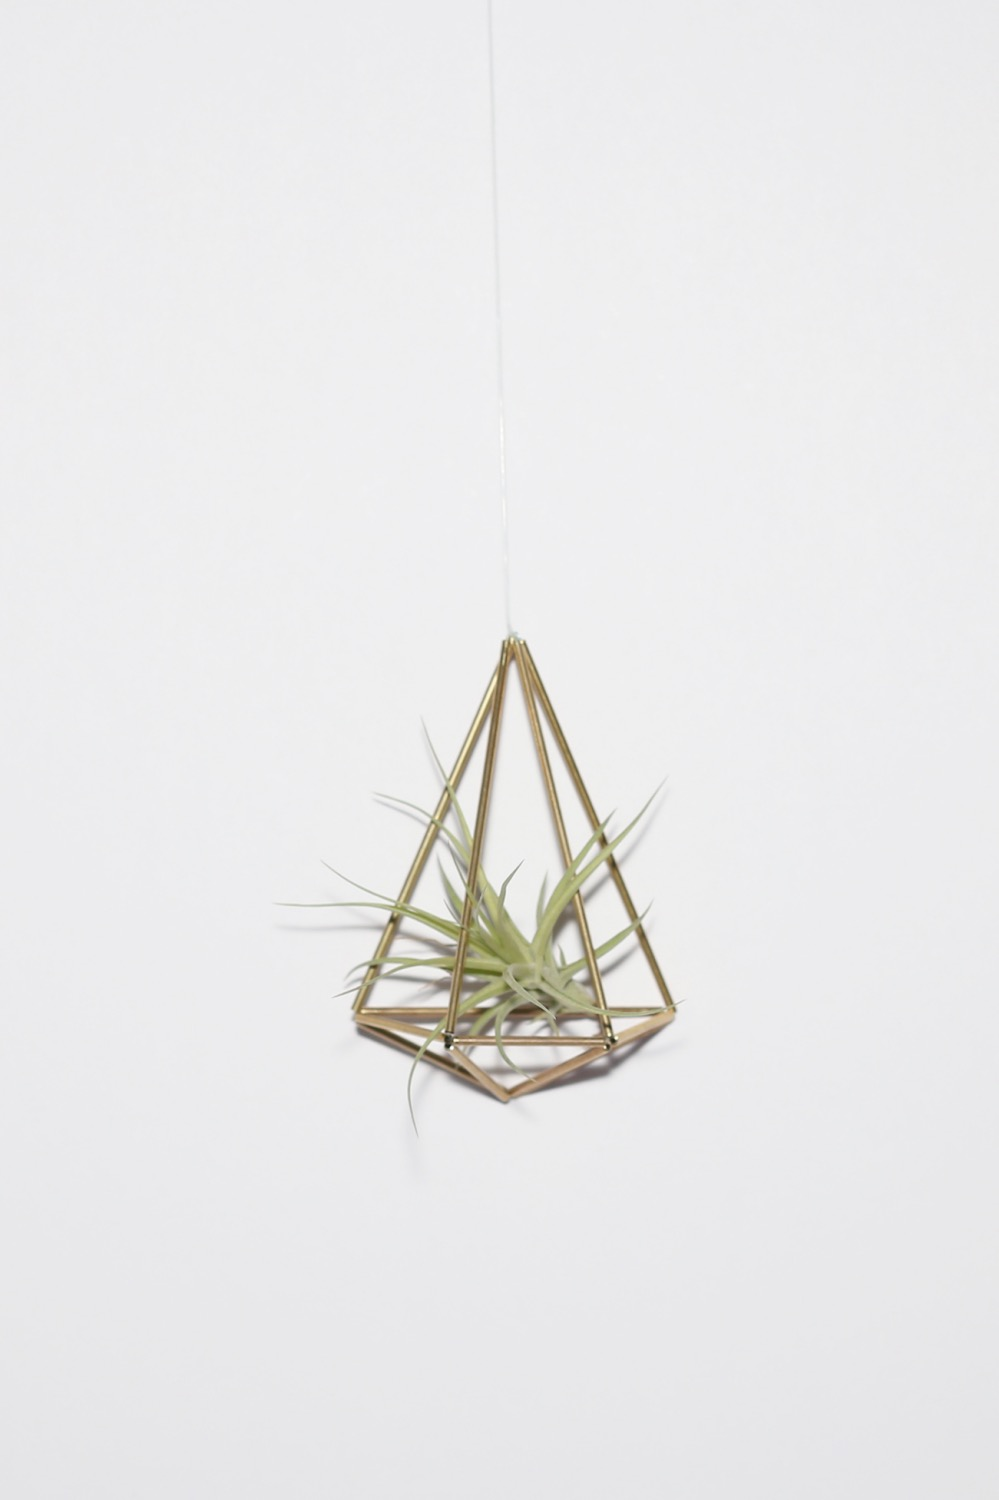 finished wall sconce with air plant diy tutorial